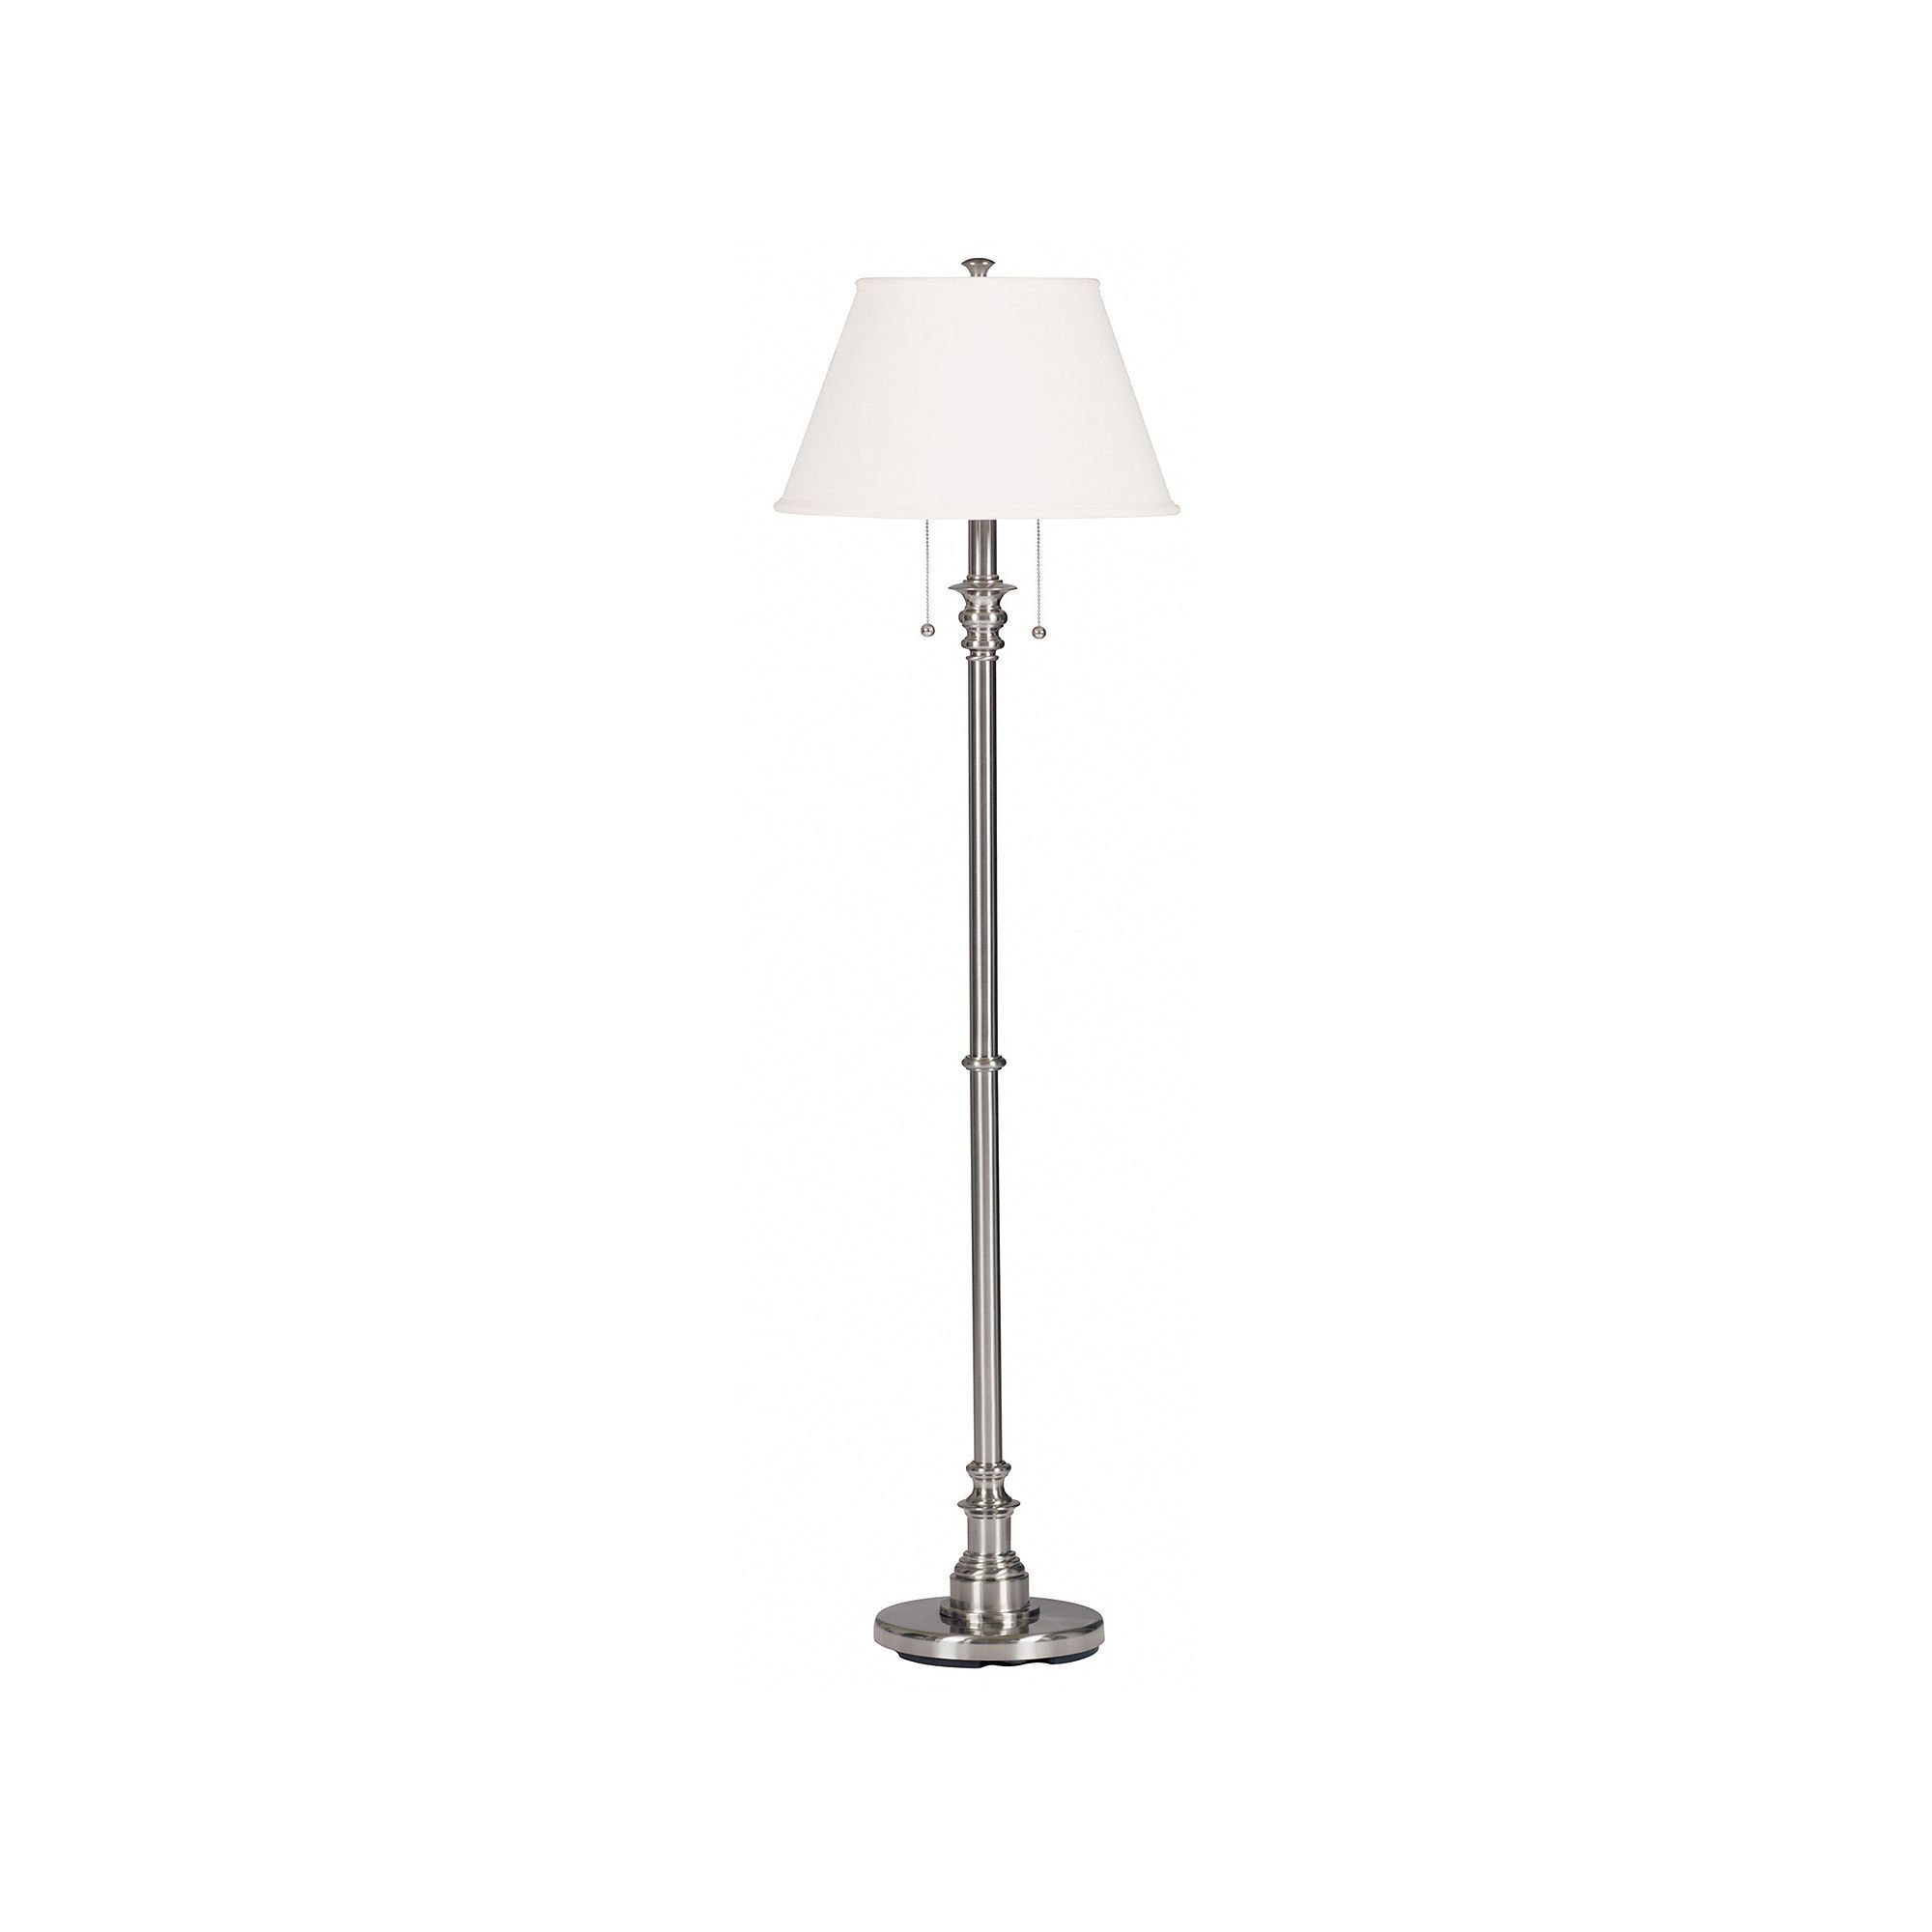 Kohls Floor Lamps Impressive Kenroy Home Spyglass Floor Lamp  Floor Lamp Design Ideas